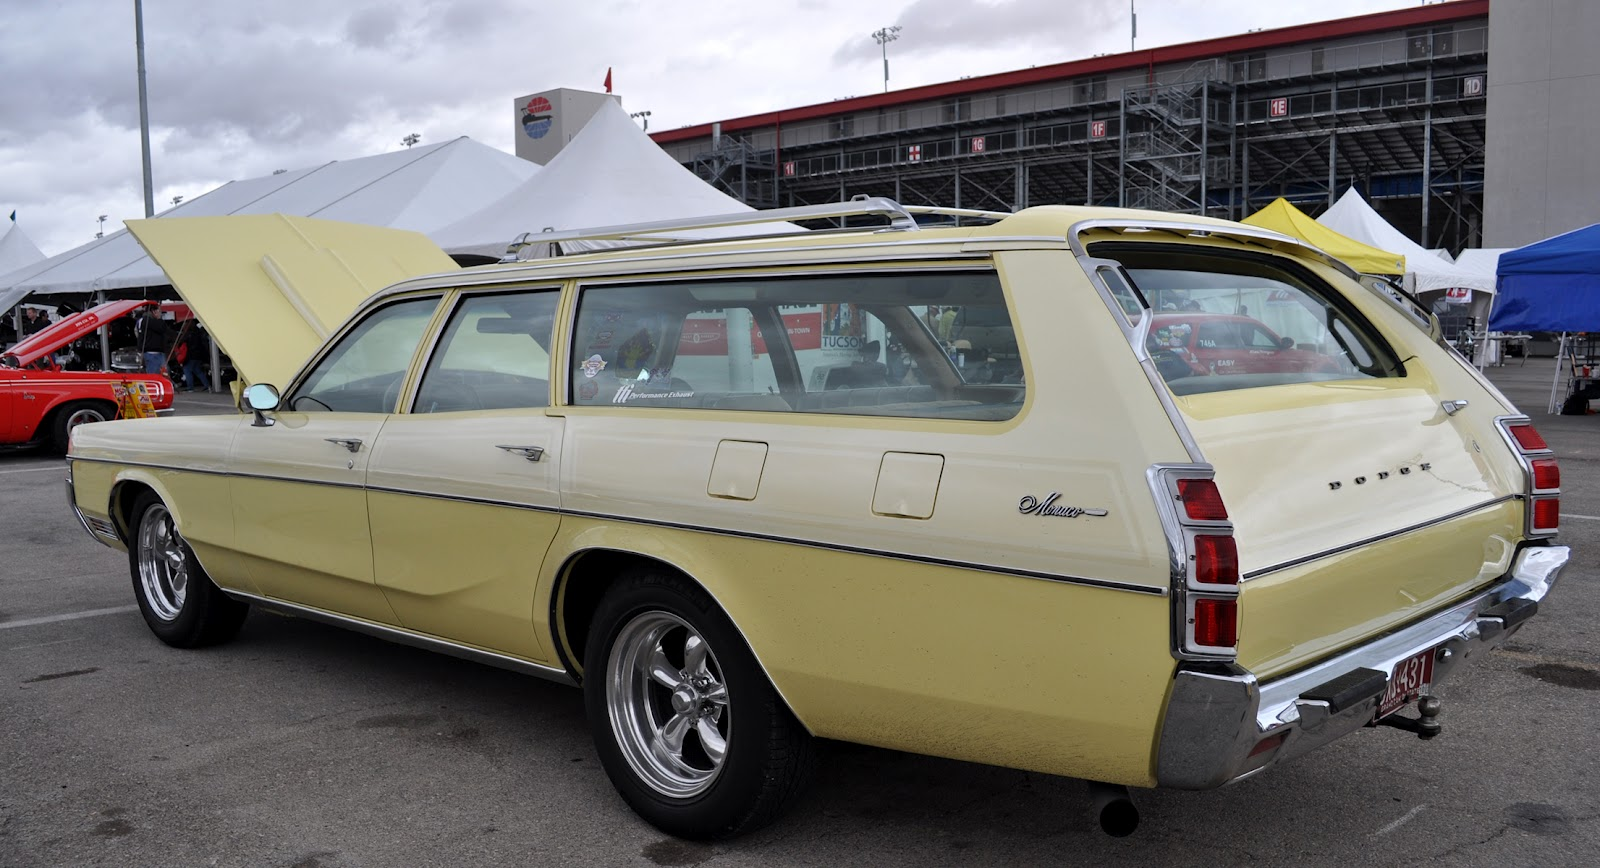 Just A Car Guy 1972 Dodge Monaco 9 Passenger Station Wagon Motorcycle Fuse And Relay Box